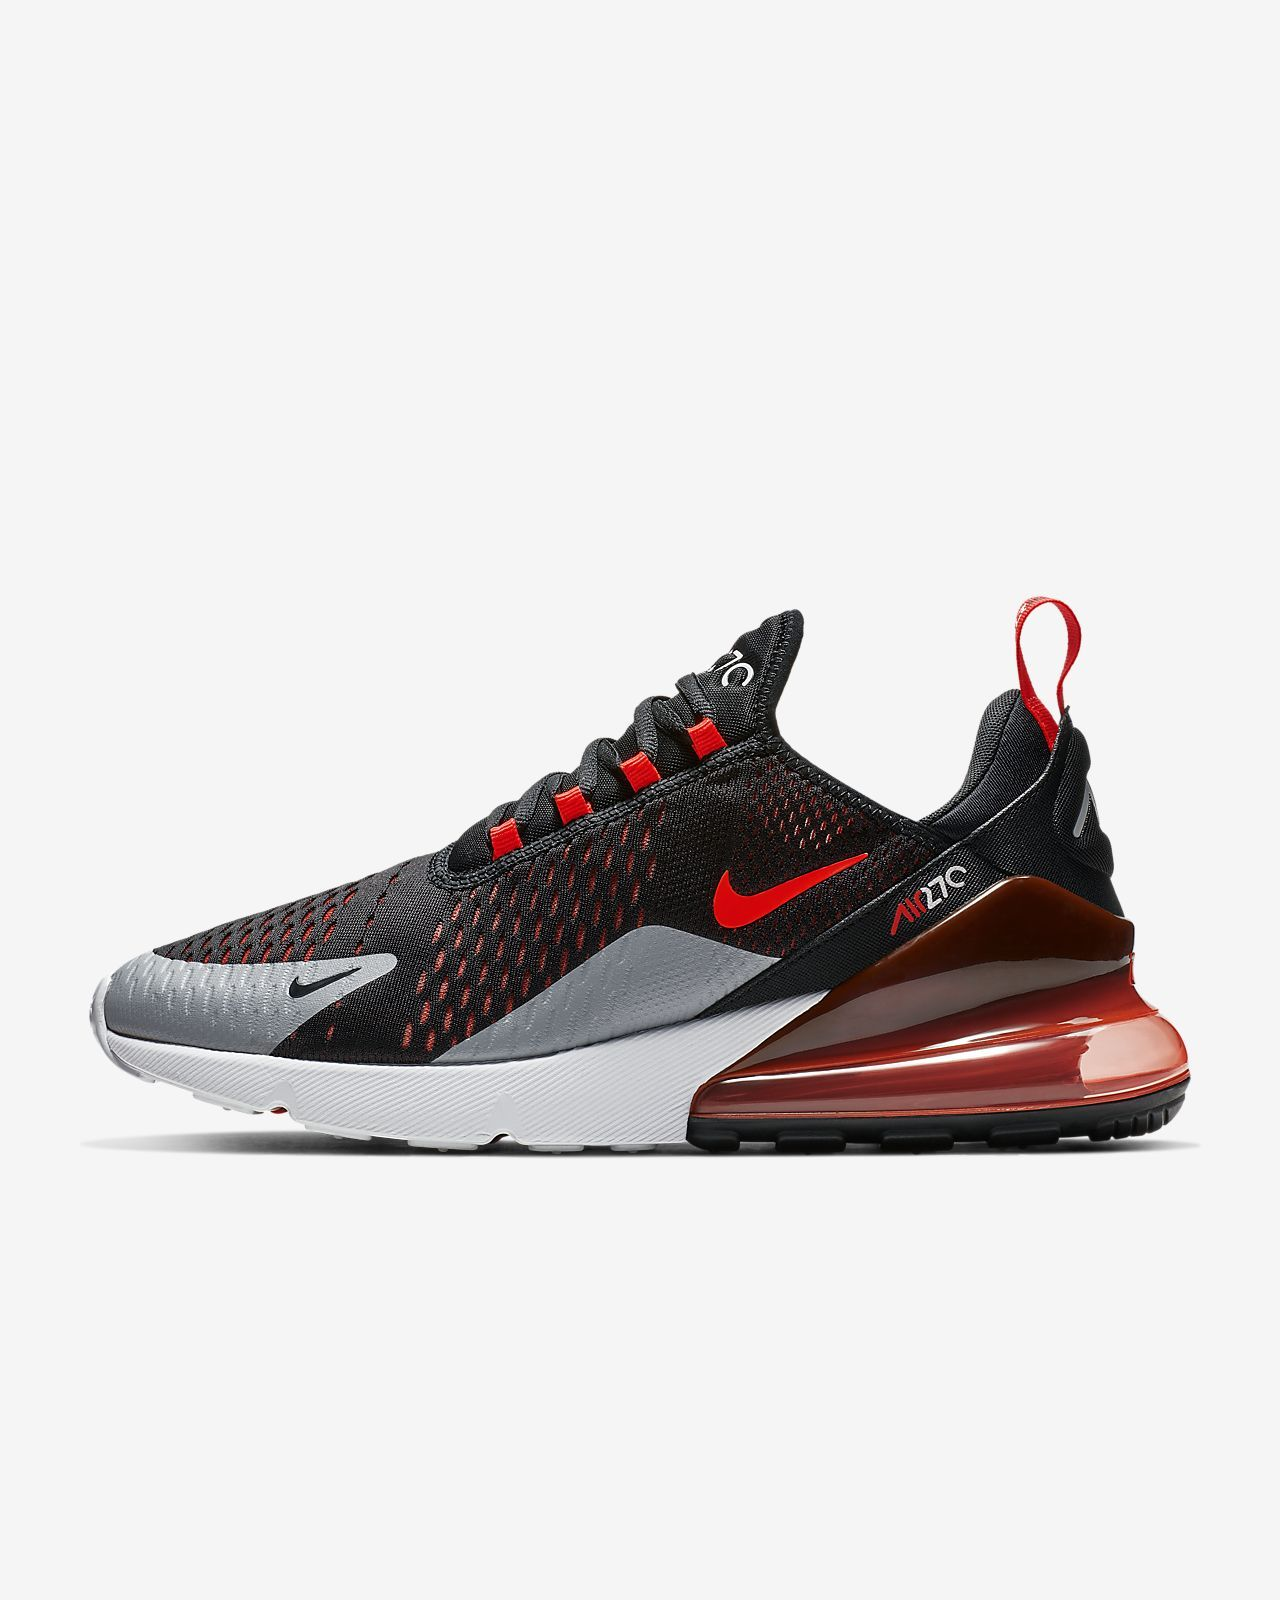 33f06432453 Nike Air Max 270 Hot Punch. Neue Sneaker ...